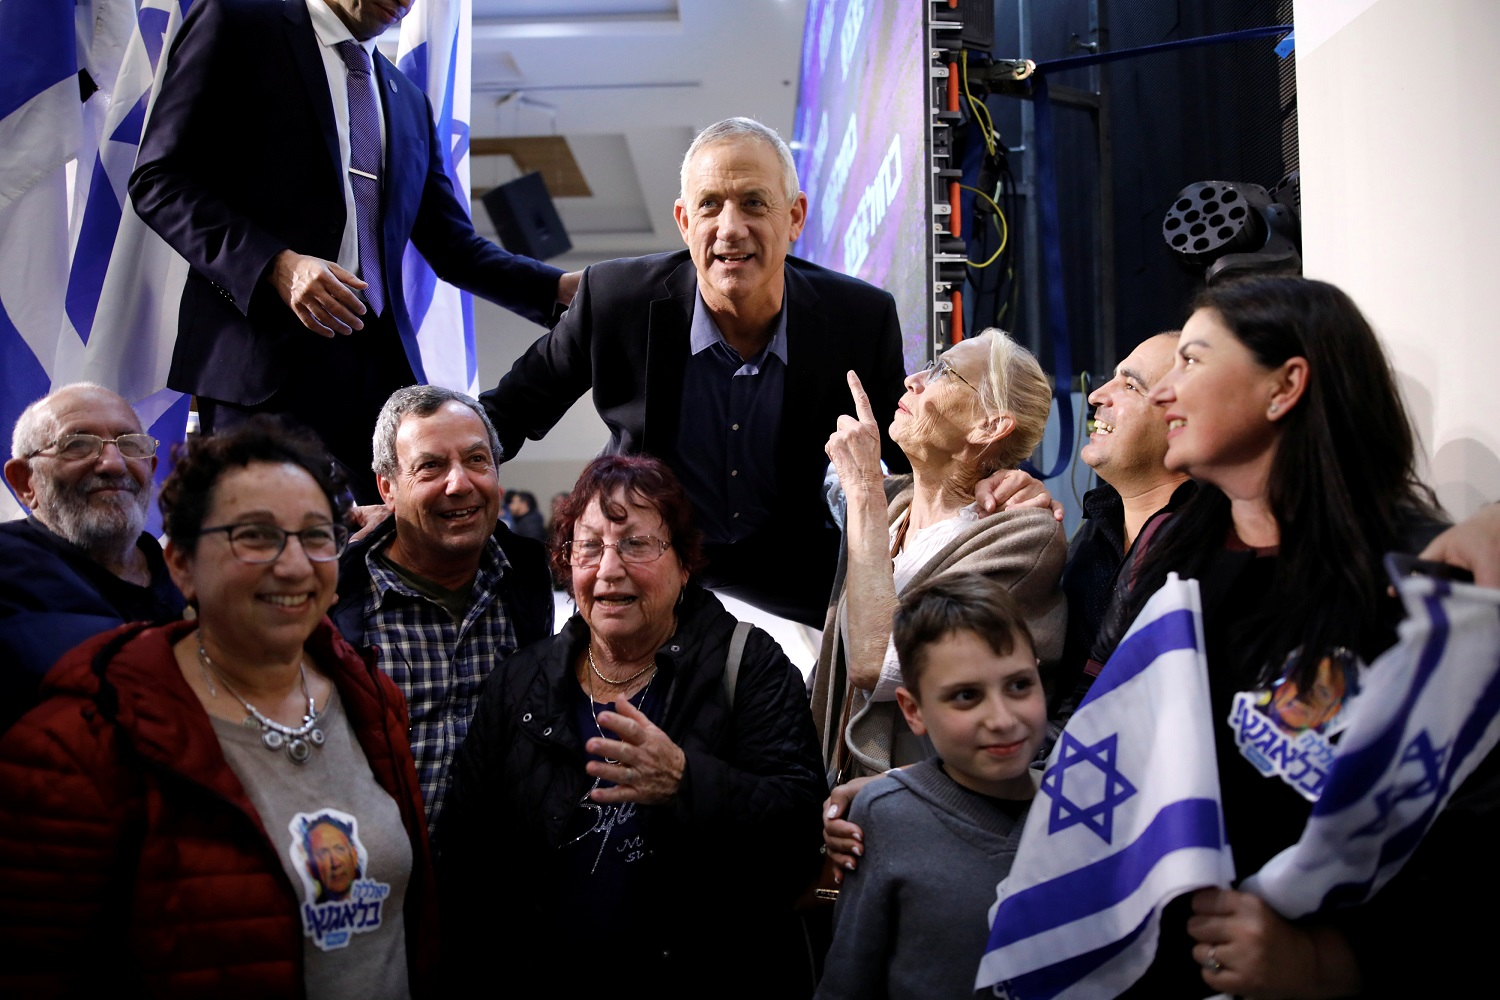 Benny Gantz with his supporters during an election campaign event in Ashkelon on 3 April 3, 2019 (Reuters)